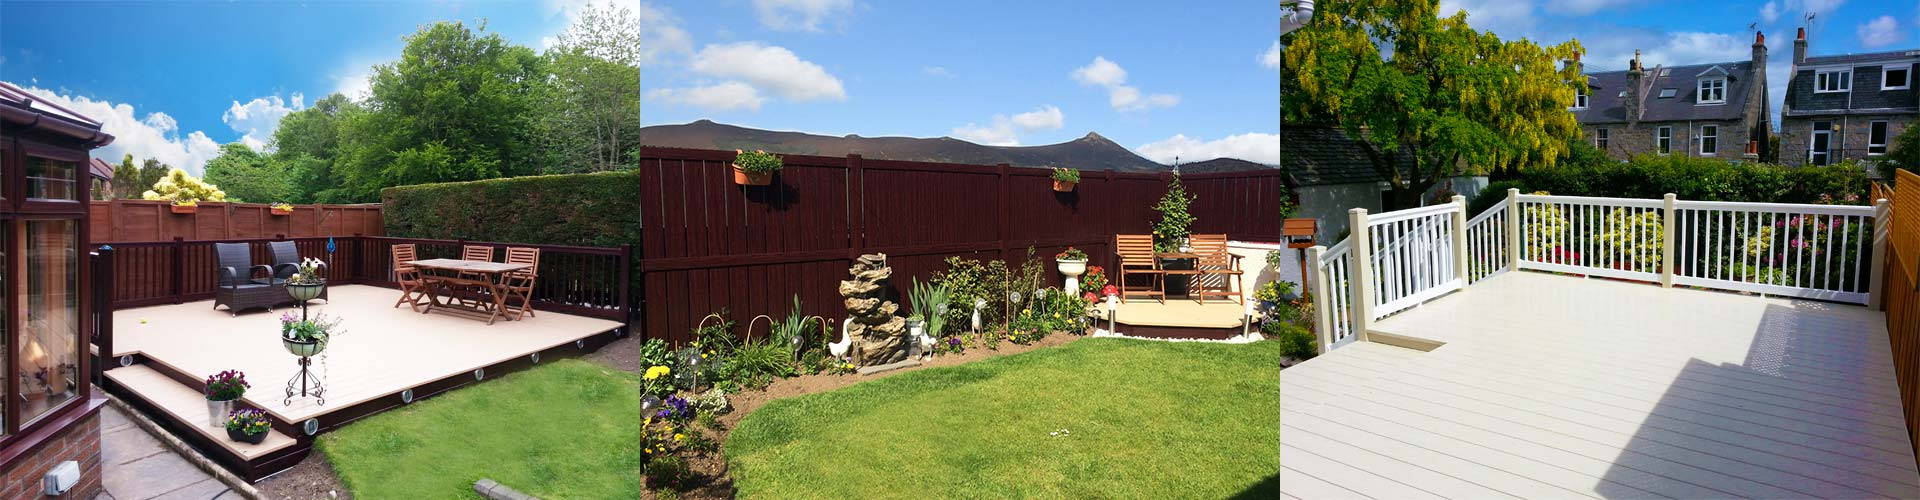 Fencing & Decking Aberdeen, Aberdeenshire & North East Scotland